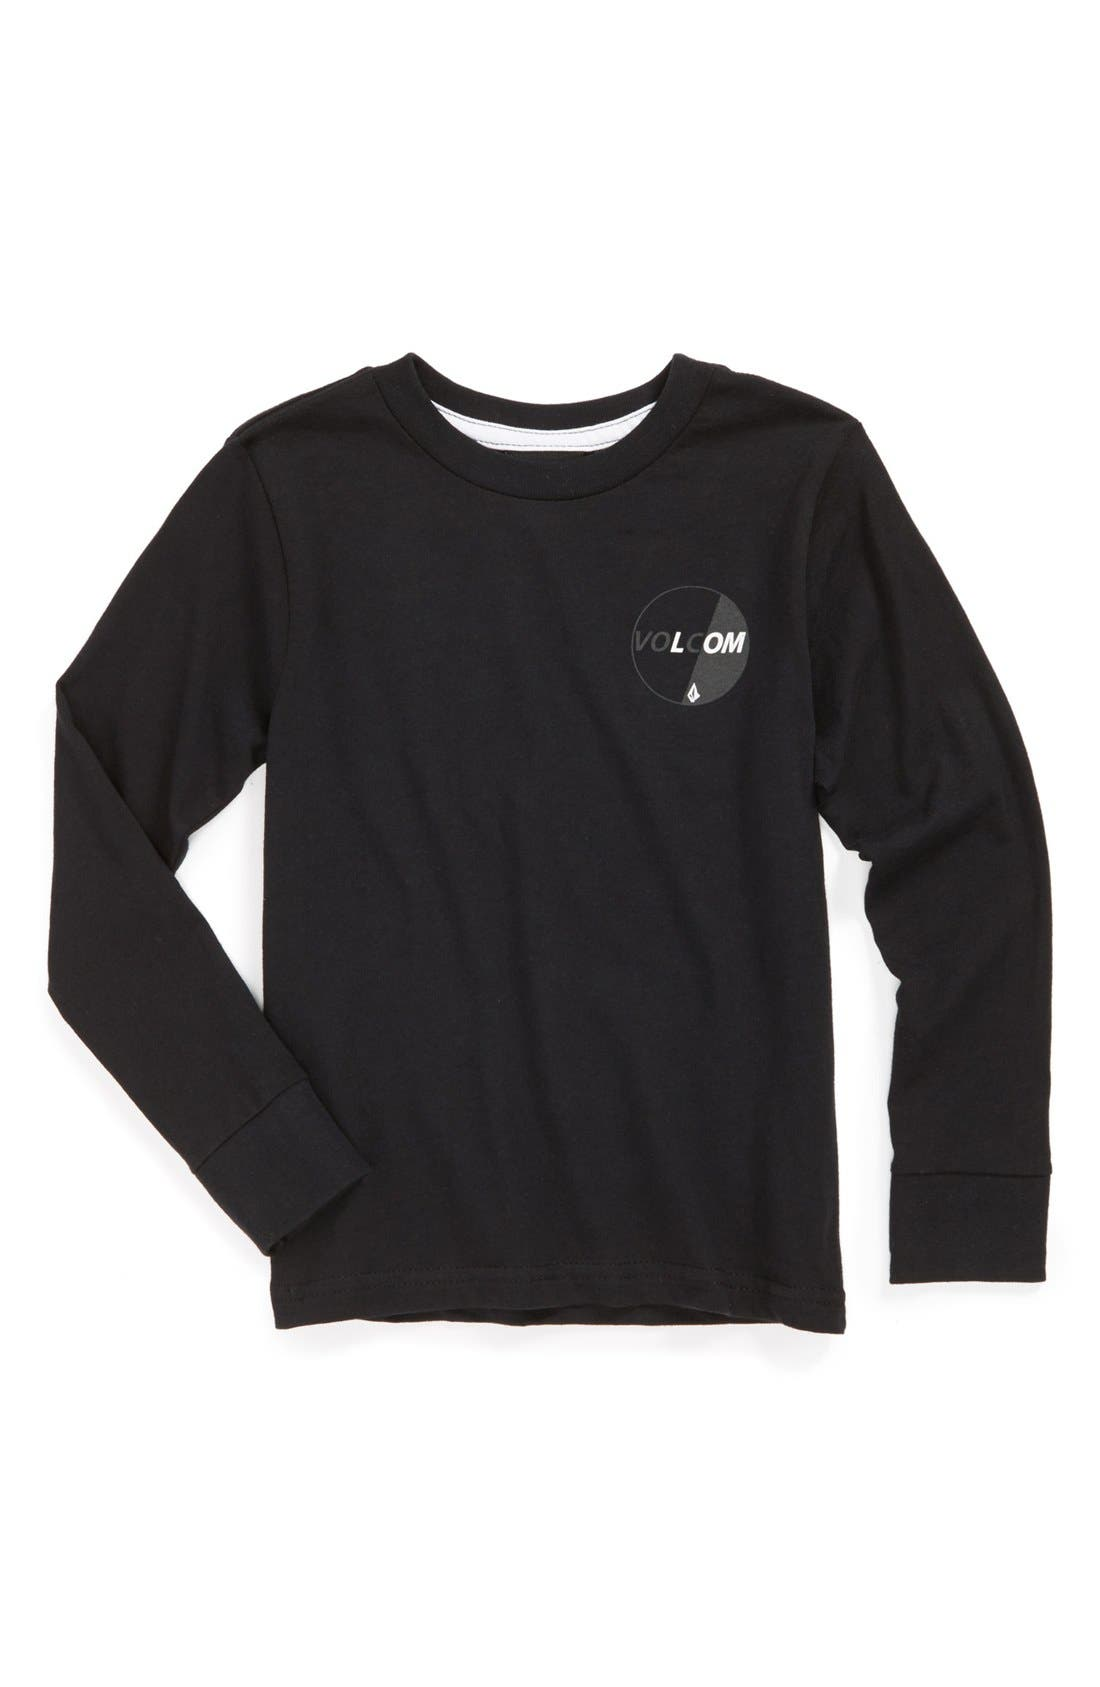 Main Image - Volcom 'Gummy Stone' Long Sleeve T-Shirt (Little Boys)